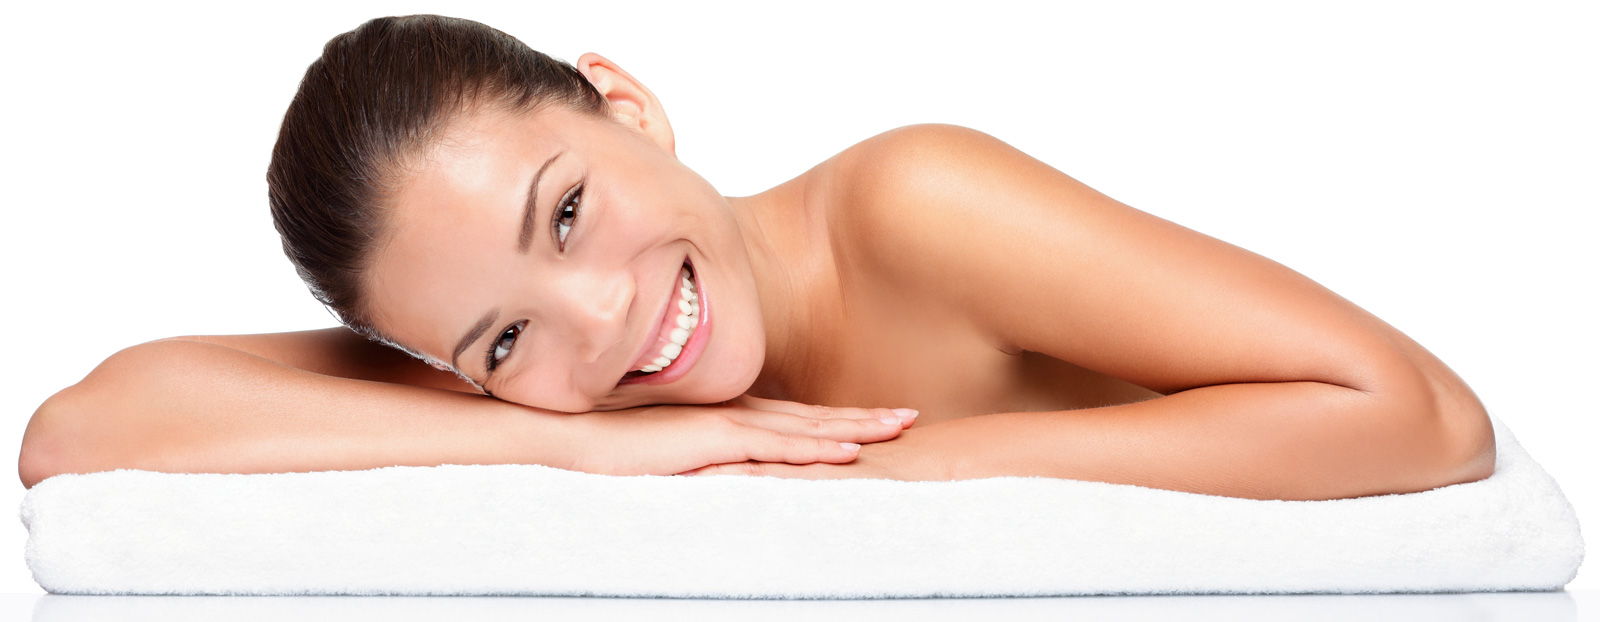 model on towel smiling